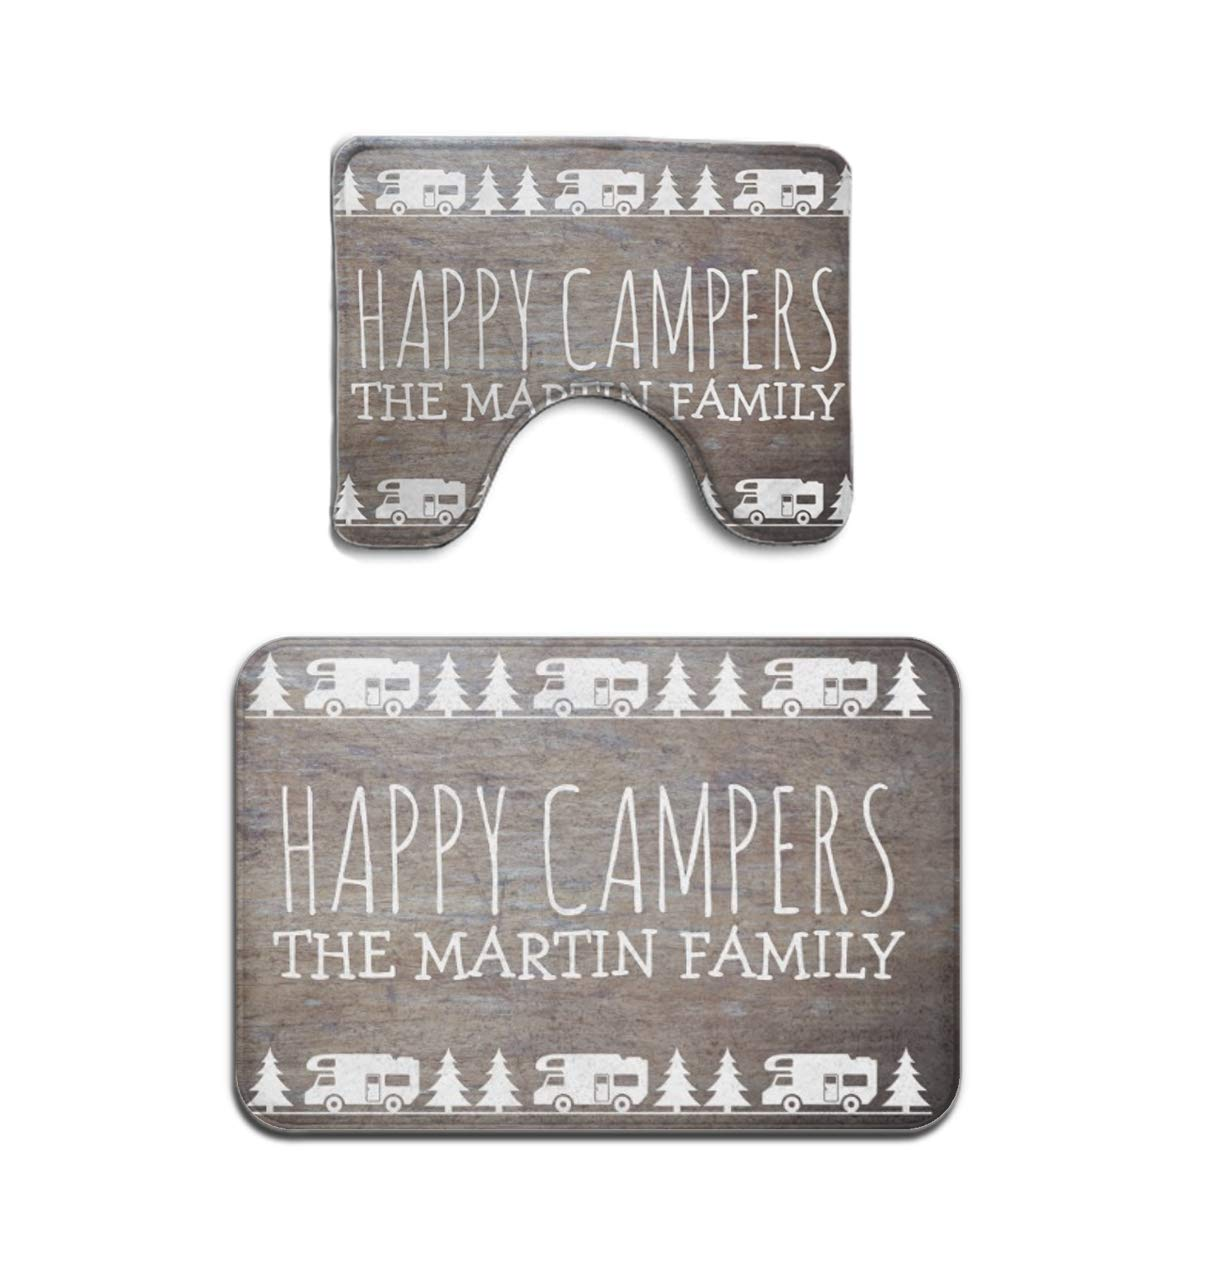 Beach Surfer Rustic Wood Personalized Camping Happy Campers 2 Piece Bath Mat Anti-mite Bathroom Rugs Toilet Mat Set Bathroom Accessories